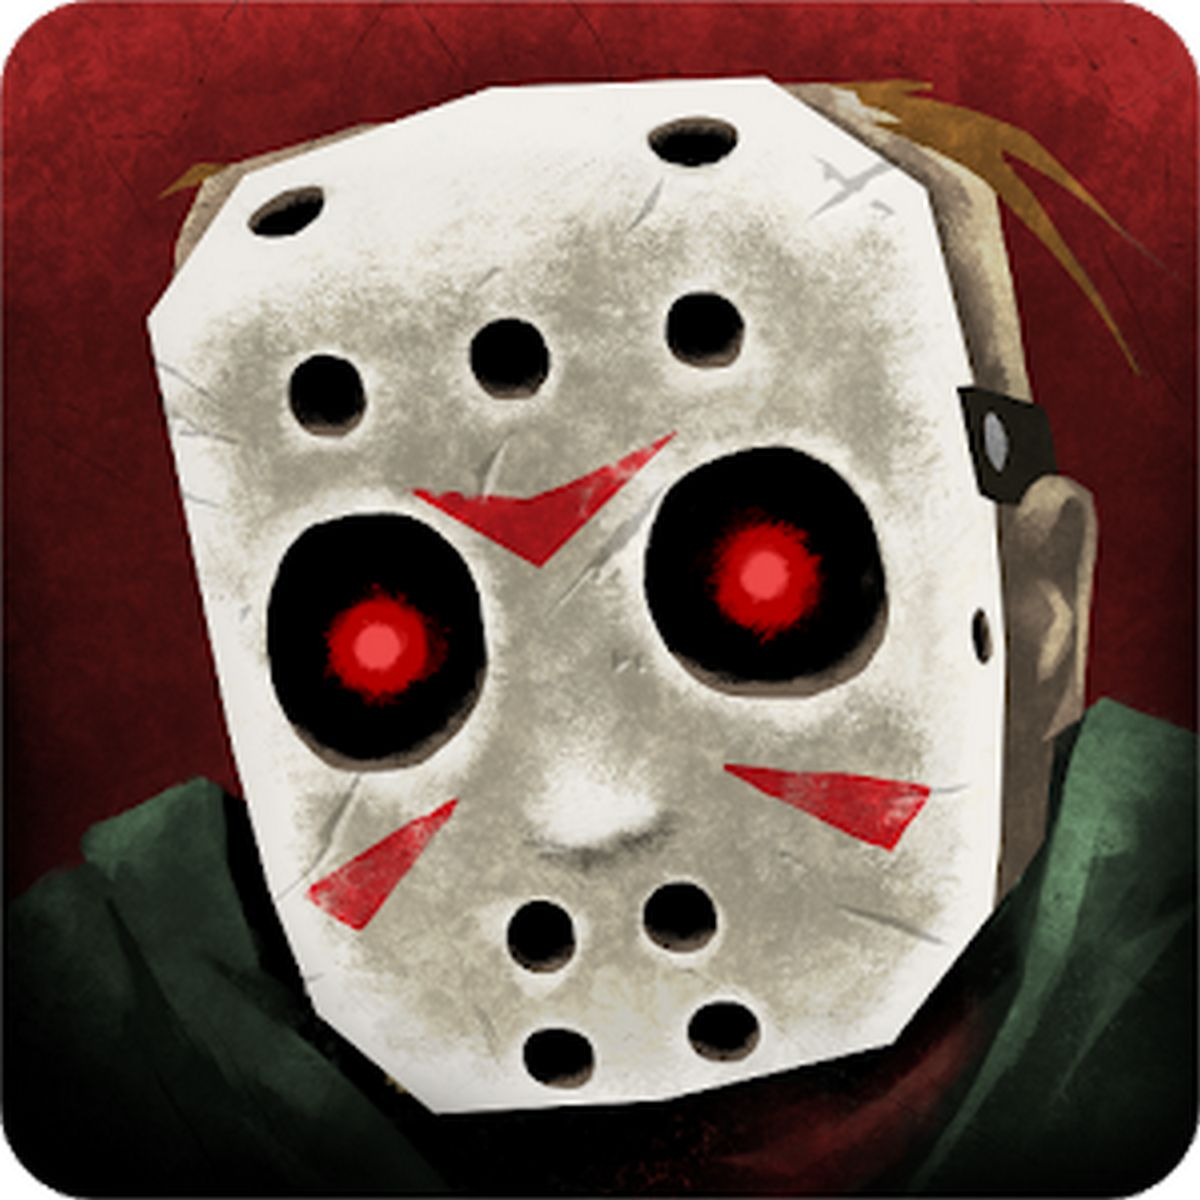 Friday the 13th: Killer Puzzle APK MOD v18.20 (Dinero infinito), Cloud Pocket 365